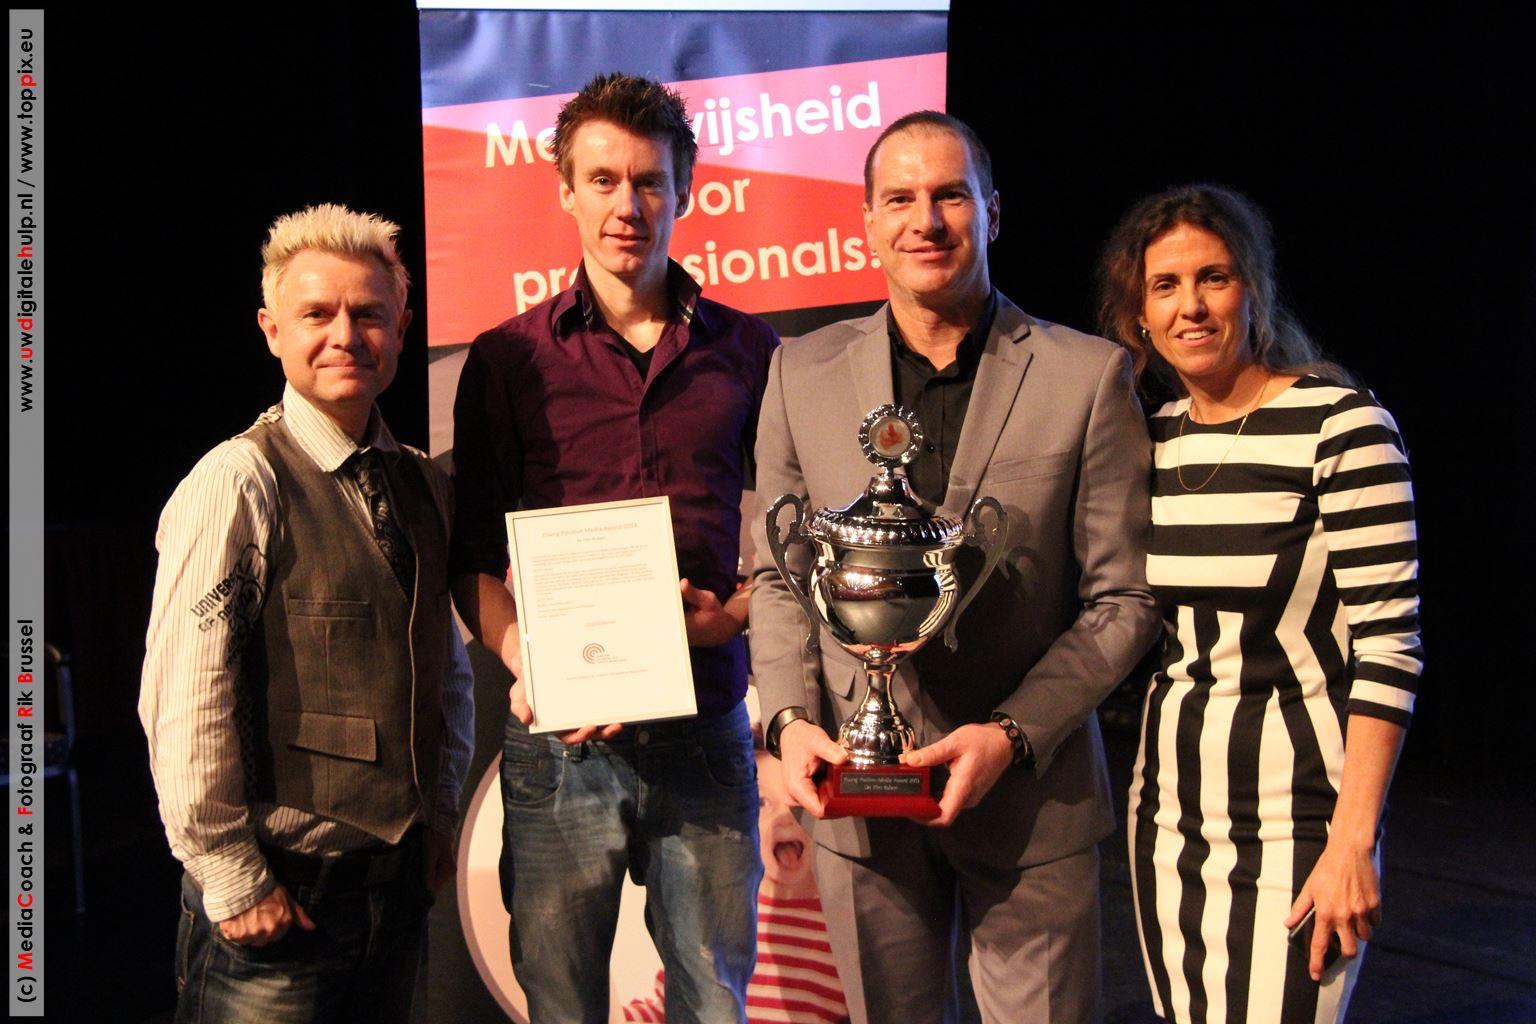 Uitreiking Positive Young Media Award 2013 De Film Ruben